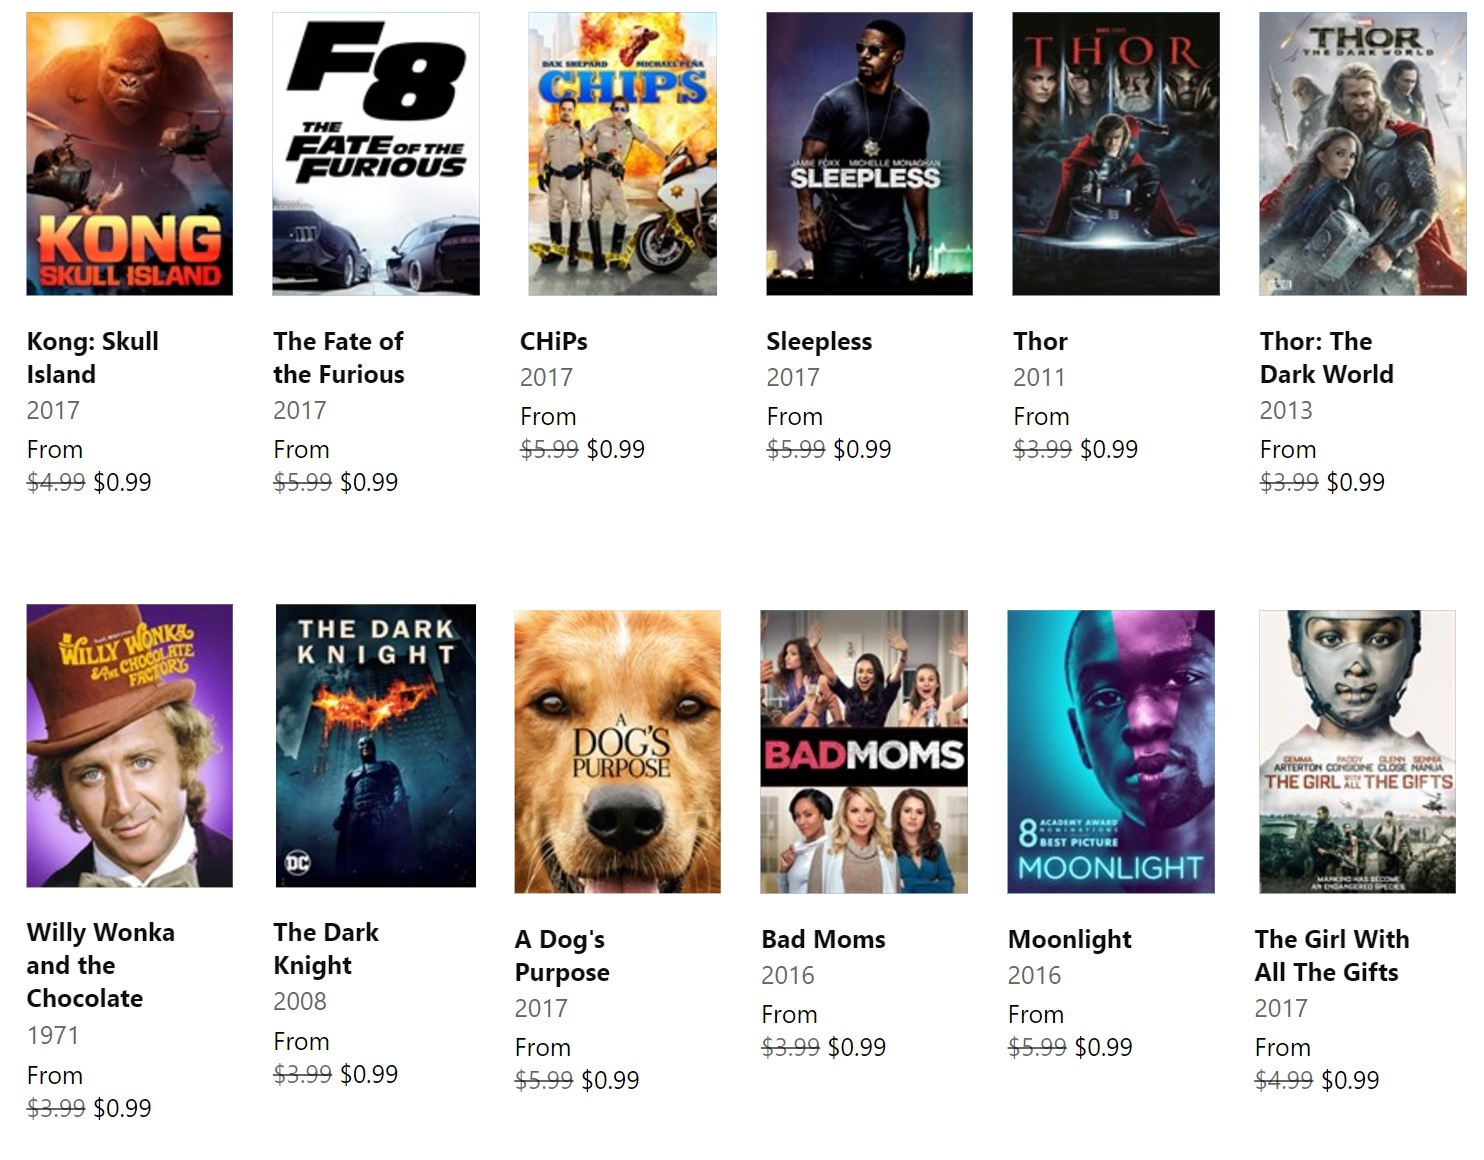 Deal Alert: Rent 2017 movies F8: Fate of the Furious, Kong: Skull Island, A Dog's Purpose and more for only $0.99 2